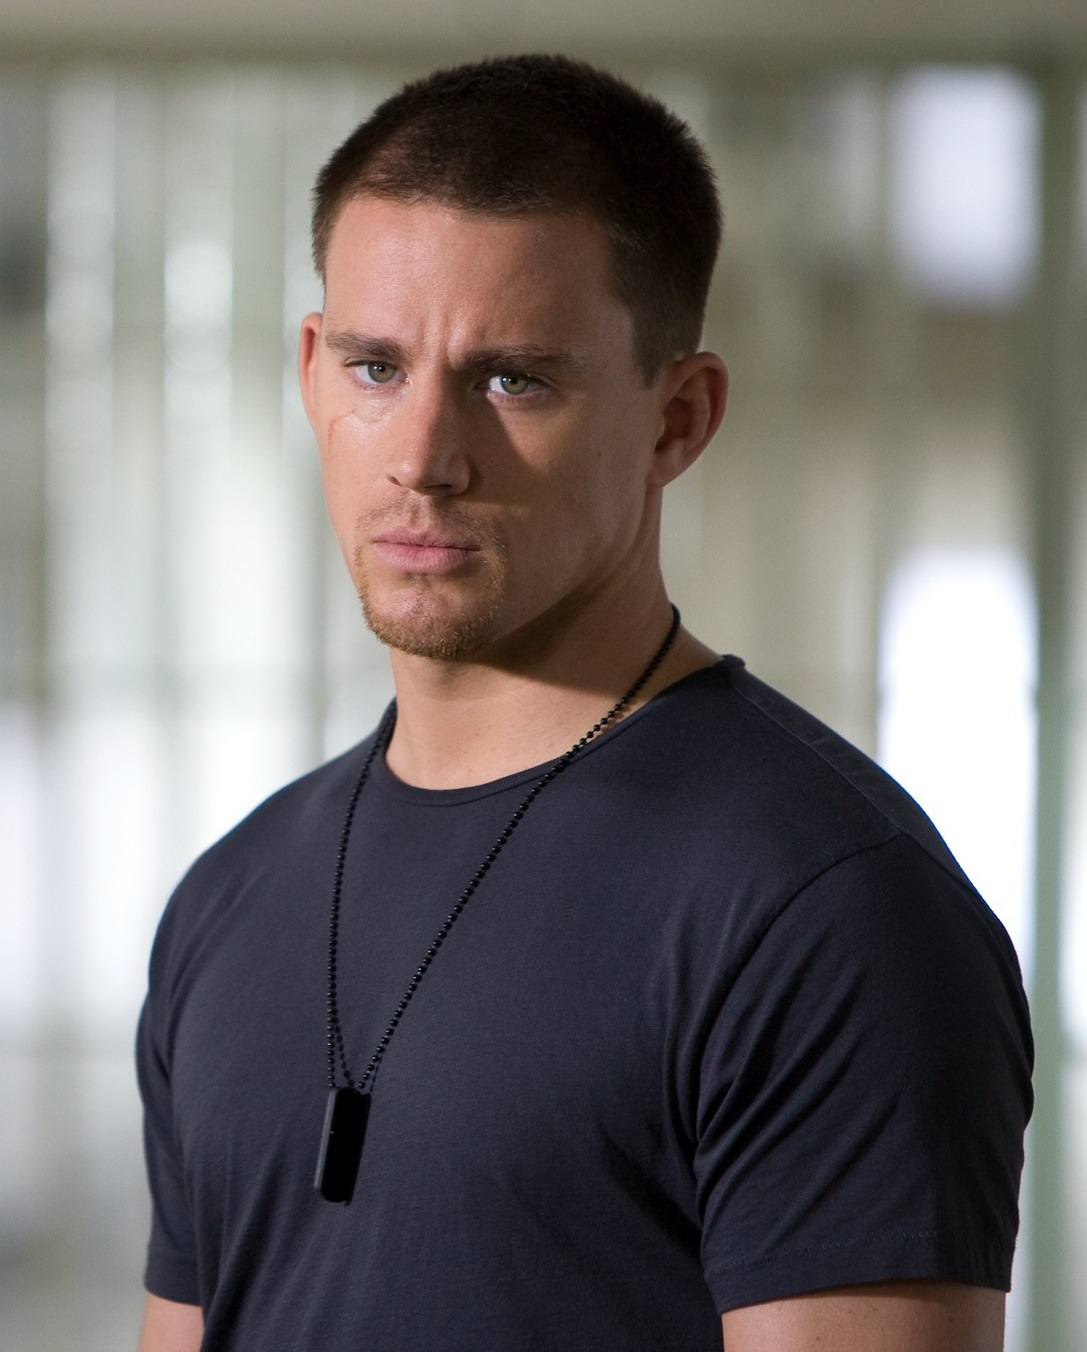 Channing Tatum - Wallpaper Actress